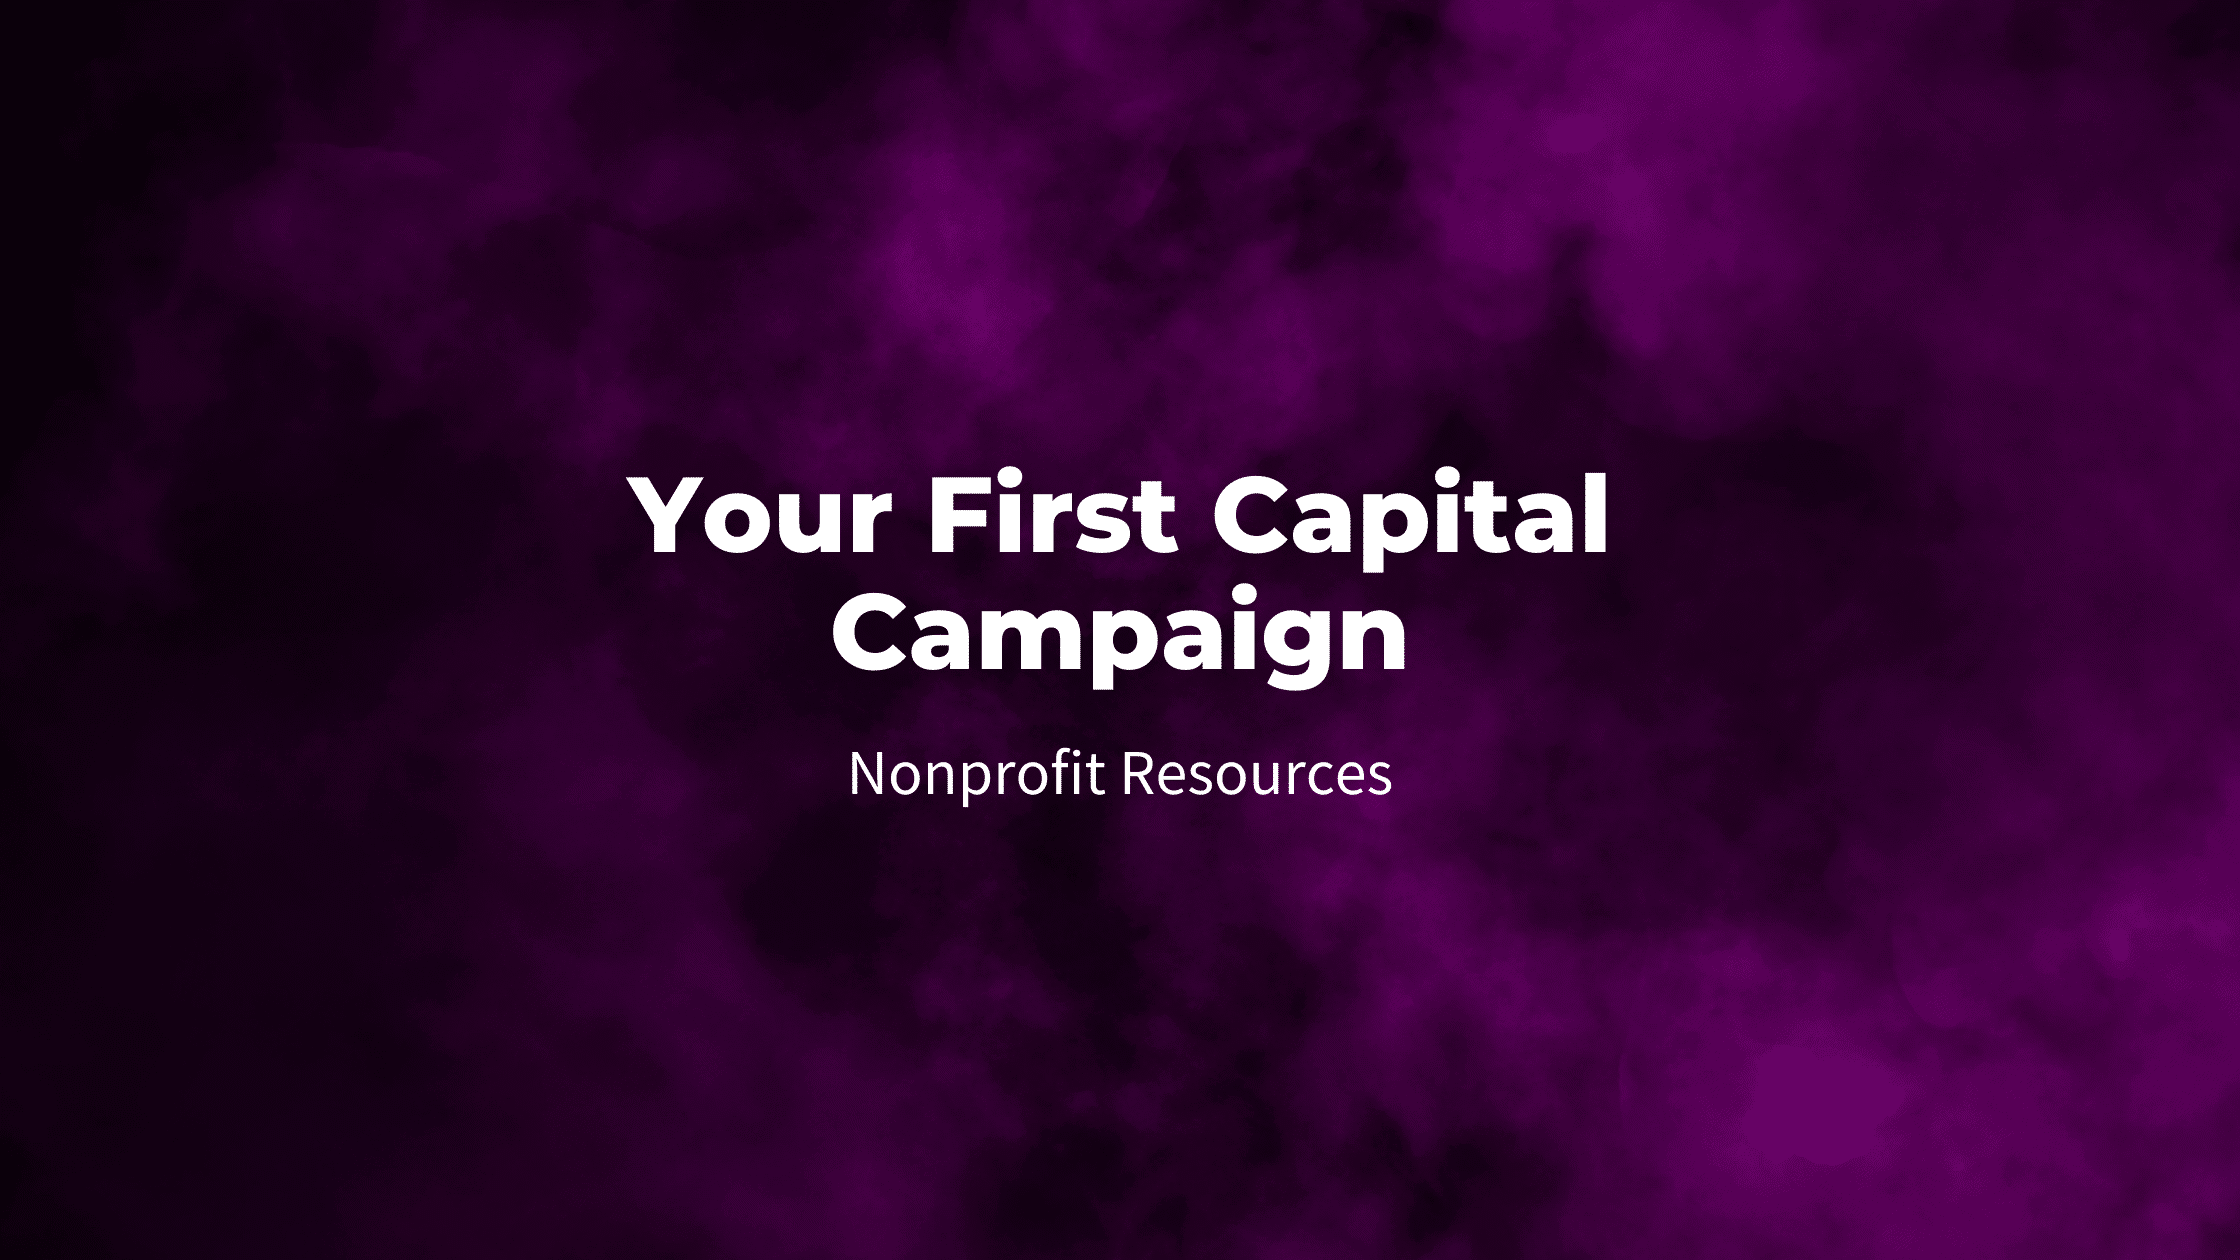 Your First Capital Campaign